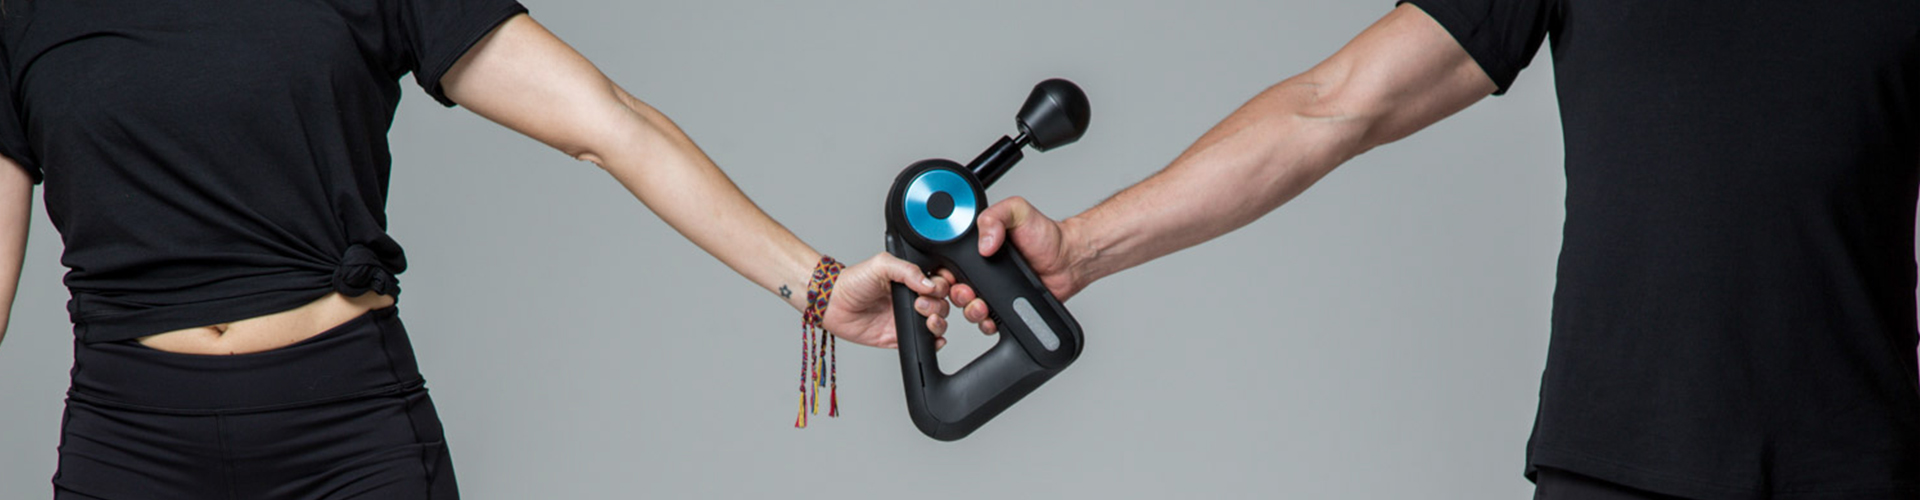 two people holding device